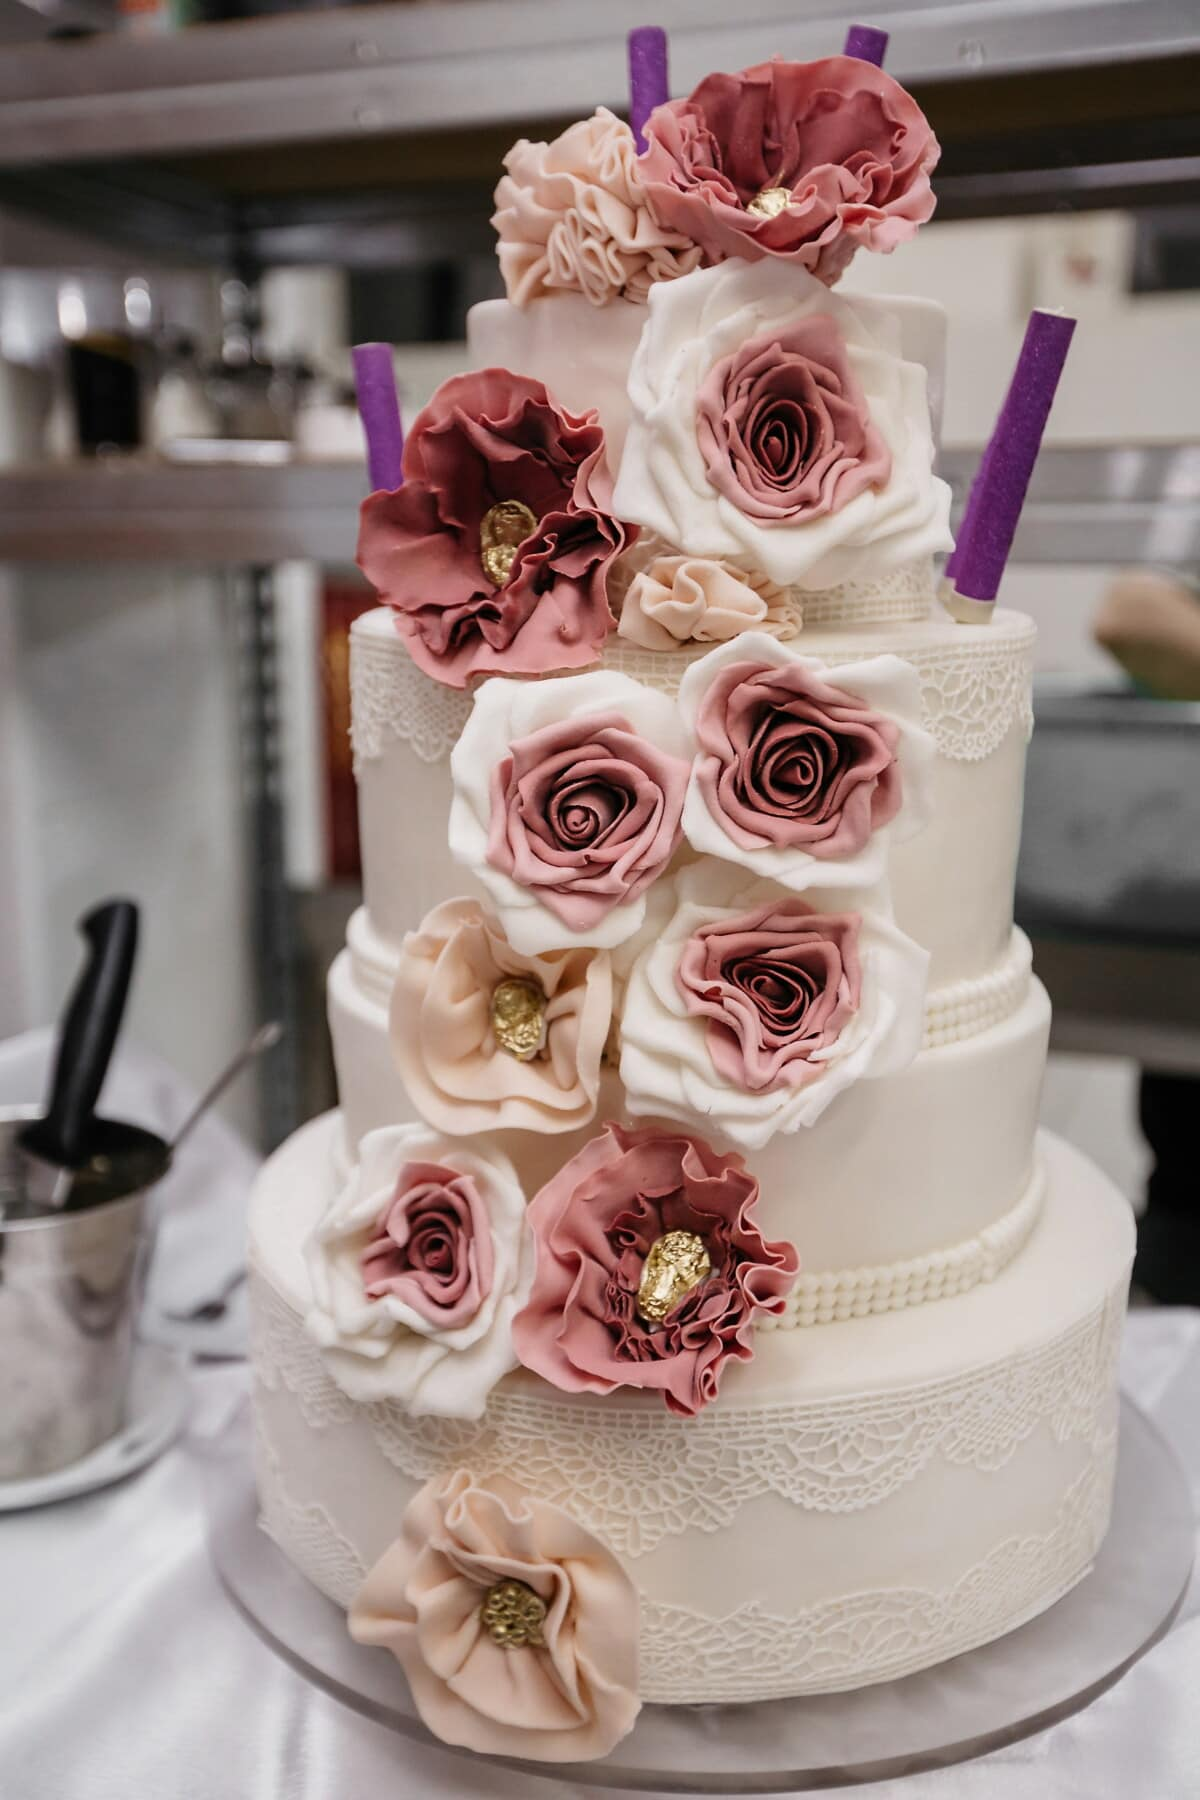 cake, kitchen table, kitchen, cake shop, wedding, romance, elegant, marriage, rose, flower